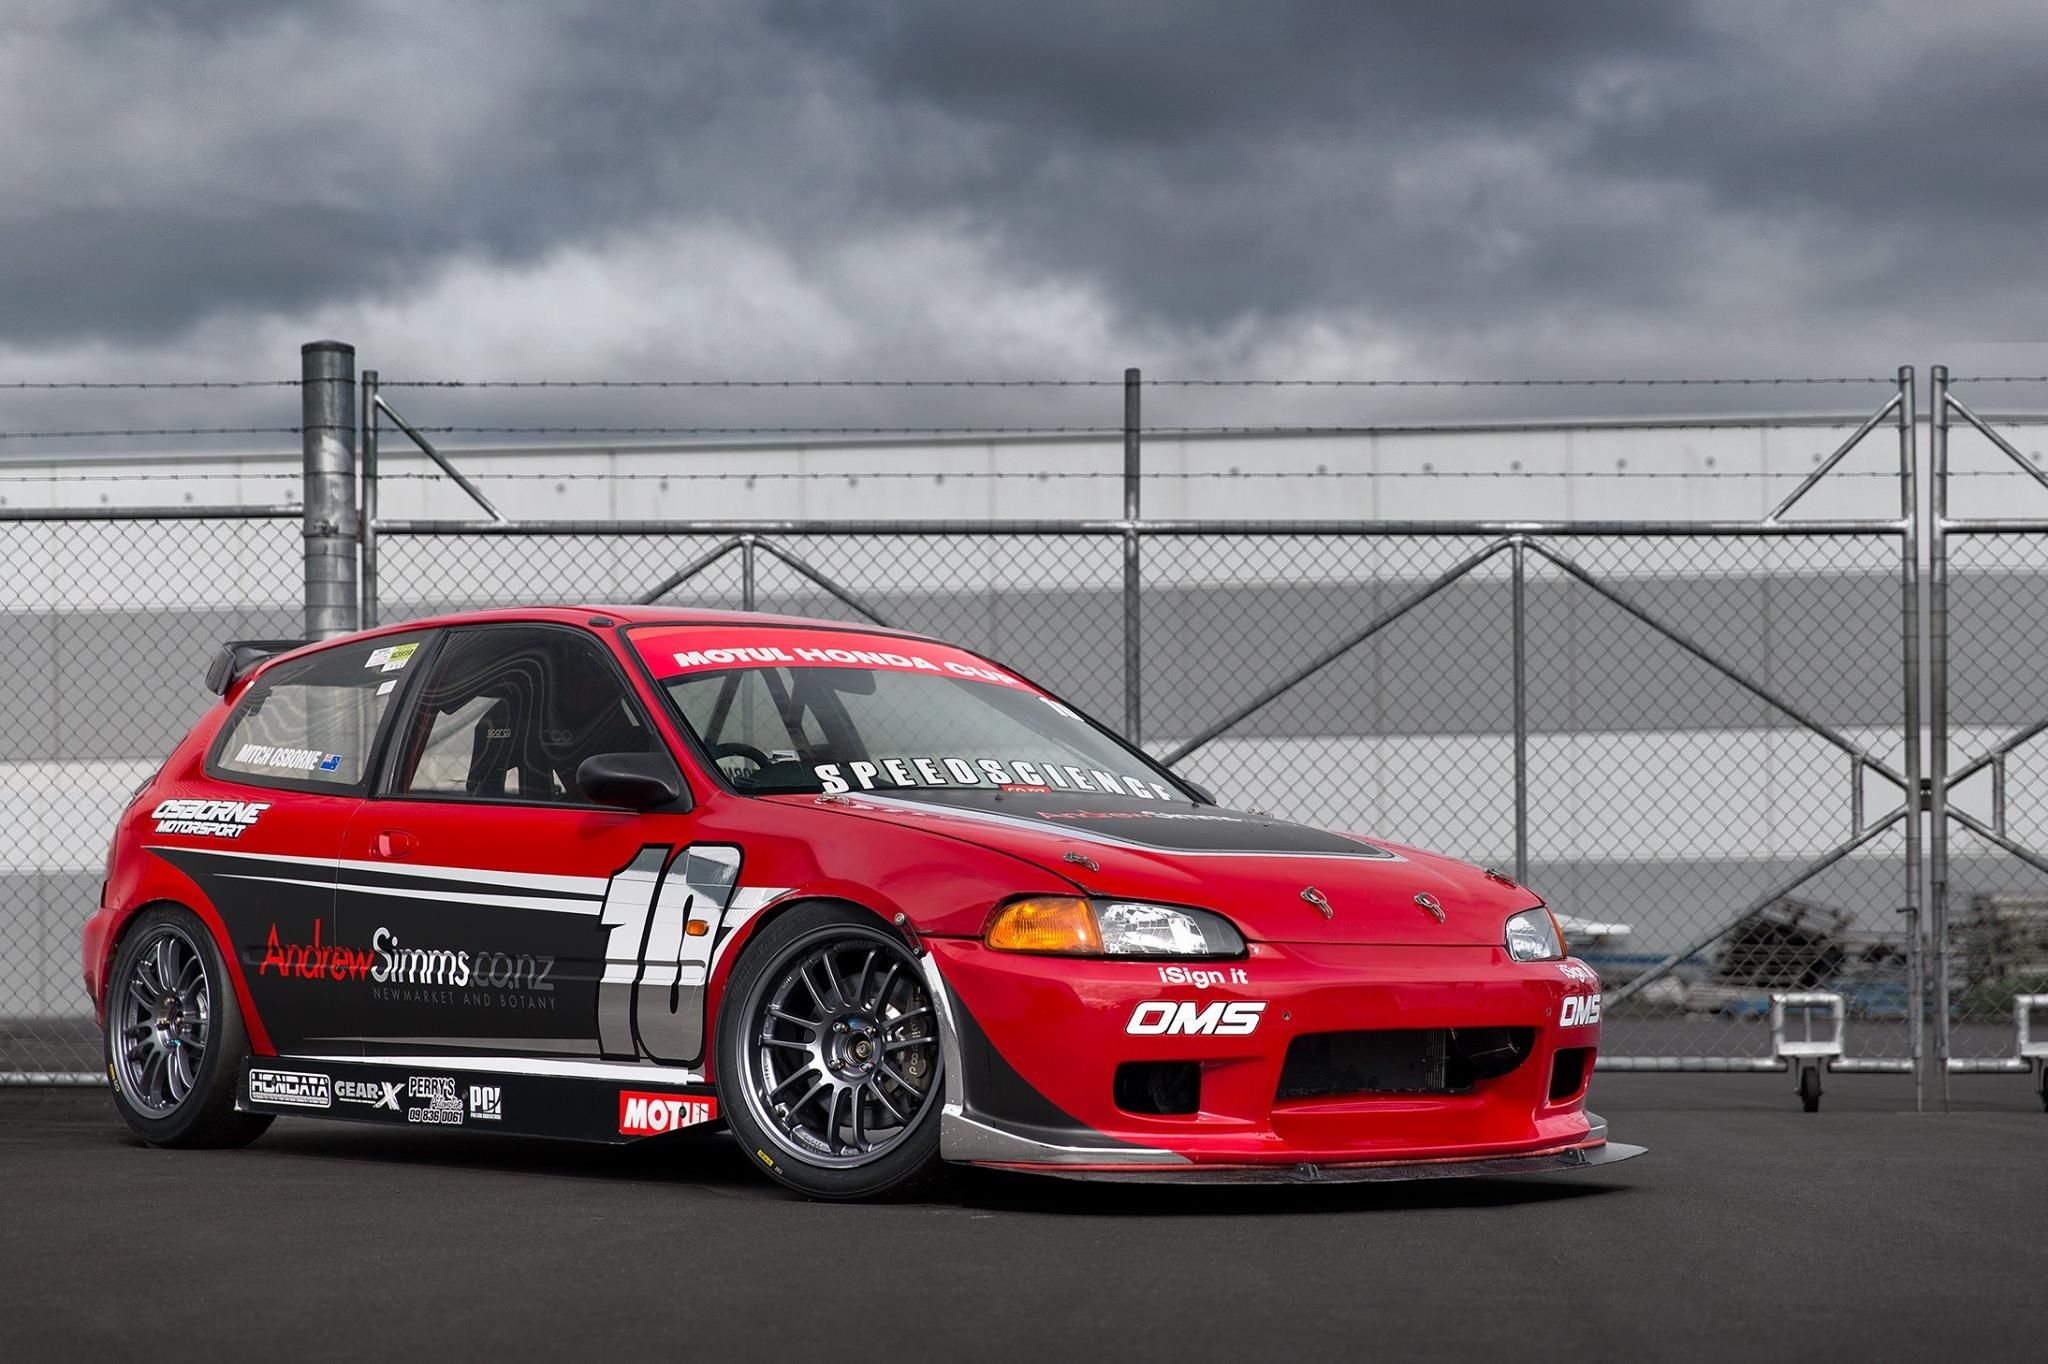 Pin By Jason Taylor On Wrapz Pinterest Car Wrap Cars And Honda - Vinyl decals for race carsbmw race car wraps by graphios